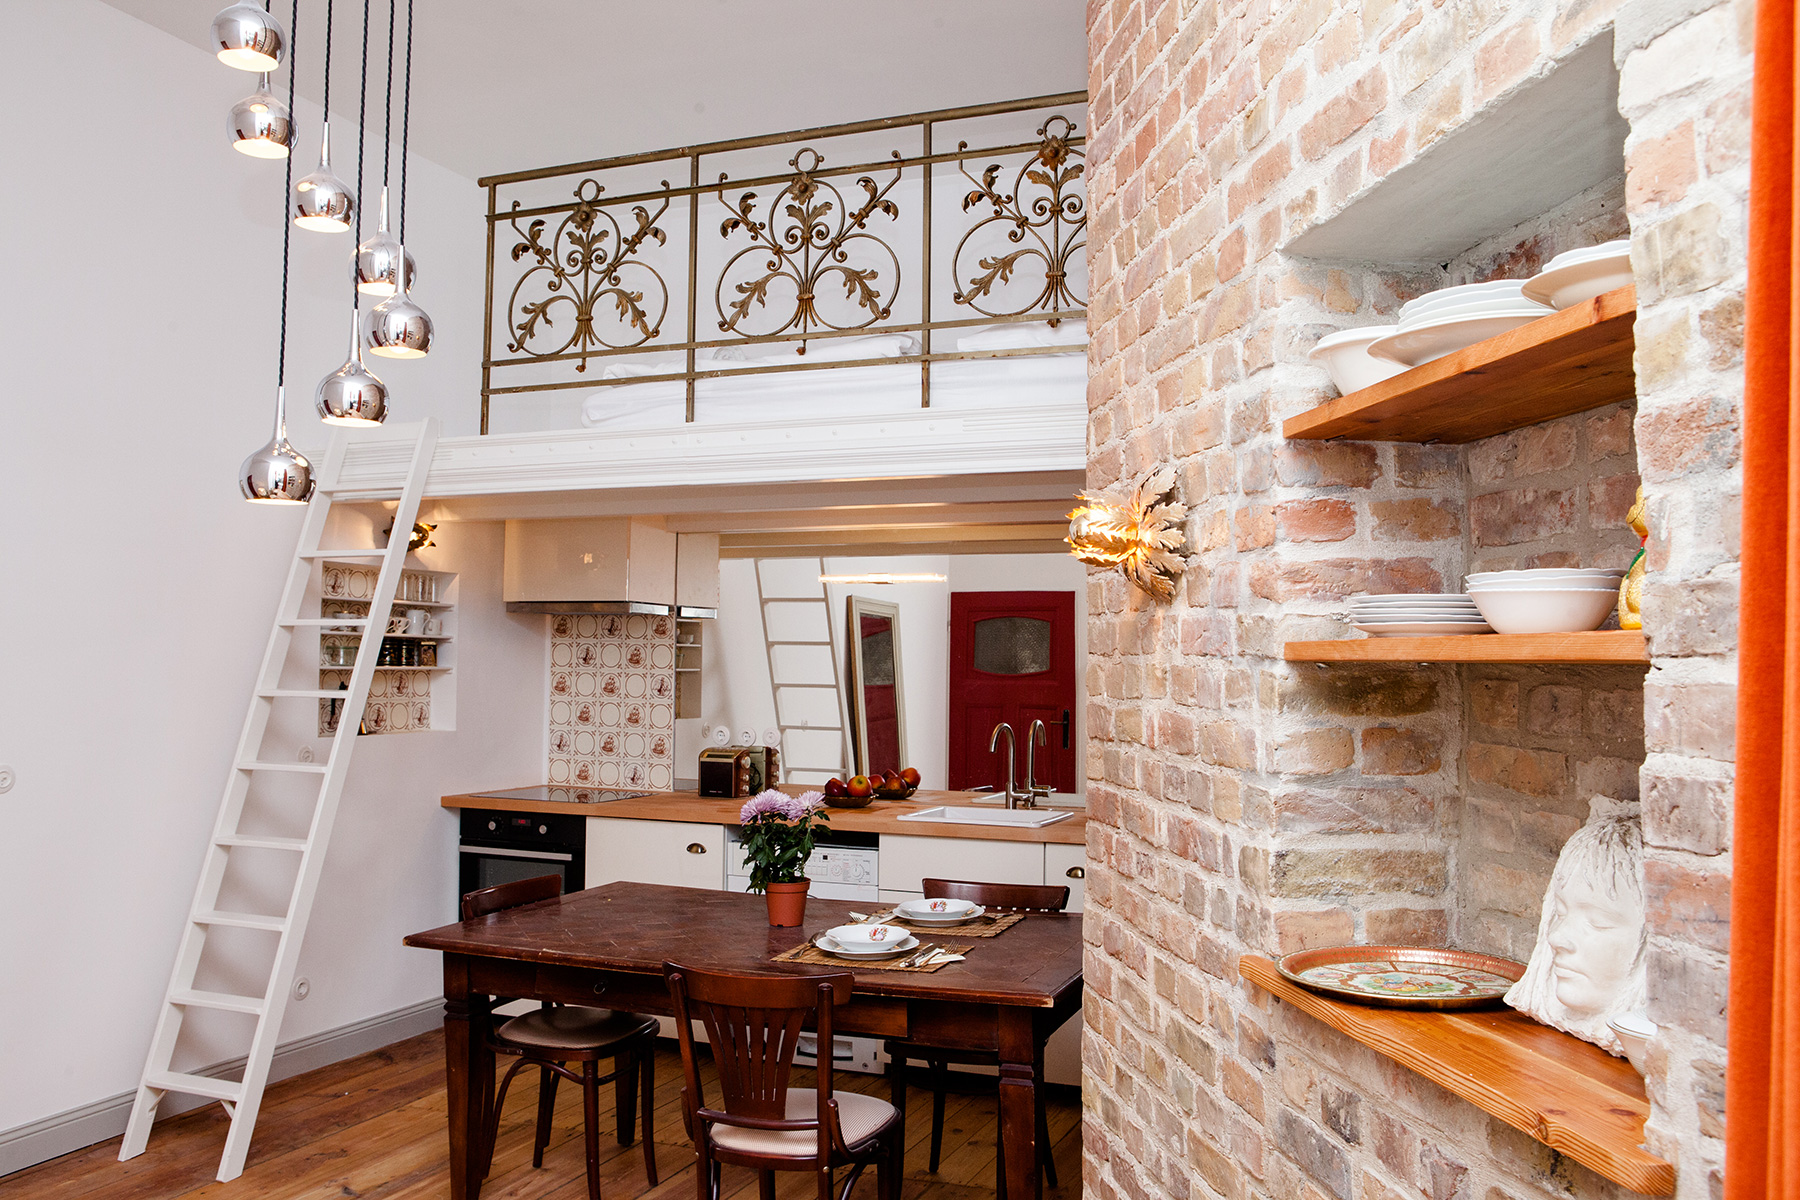 property photography image of a loft room with a brick wall and a kitchen with a ladder